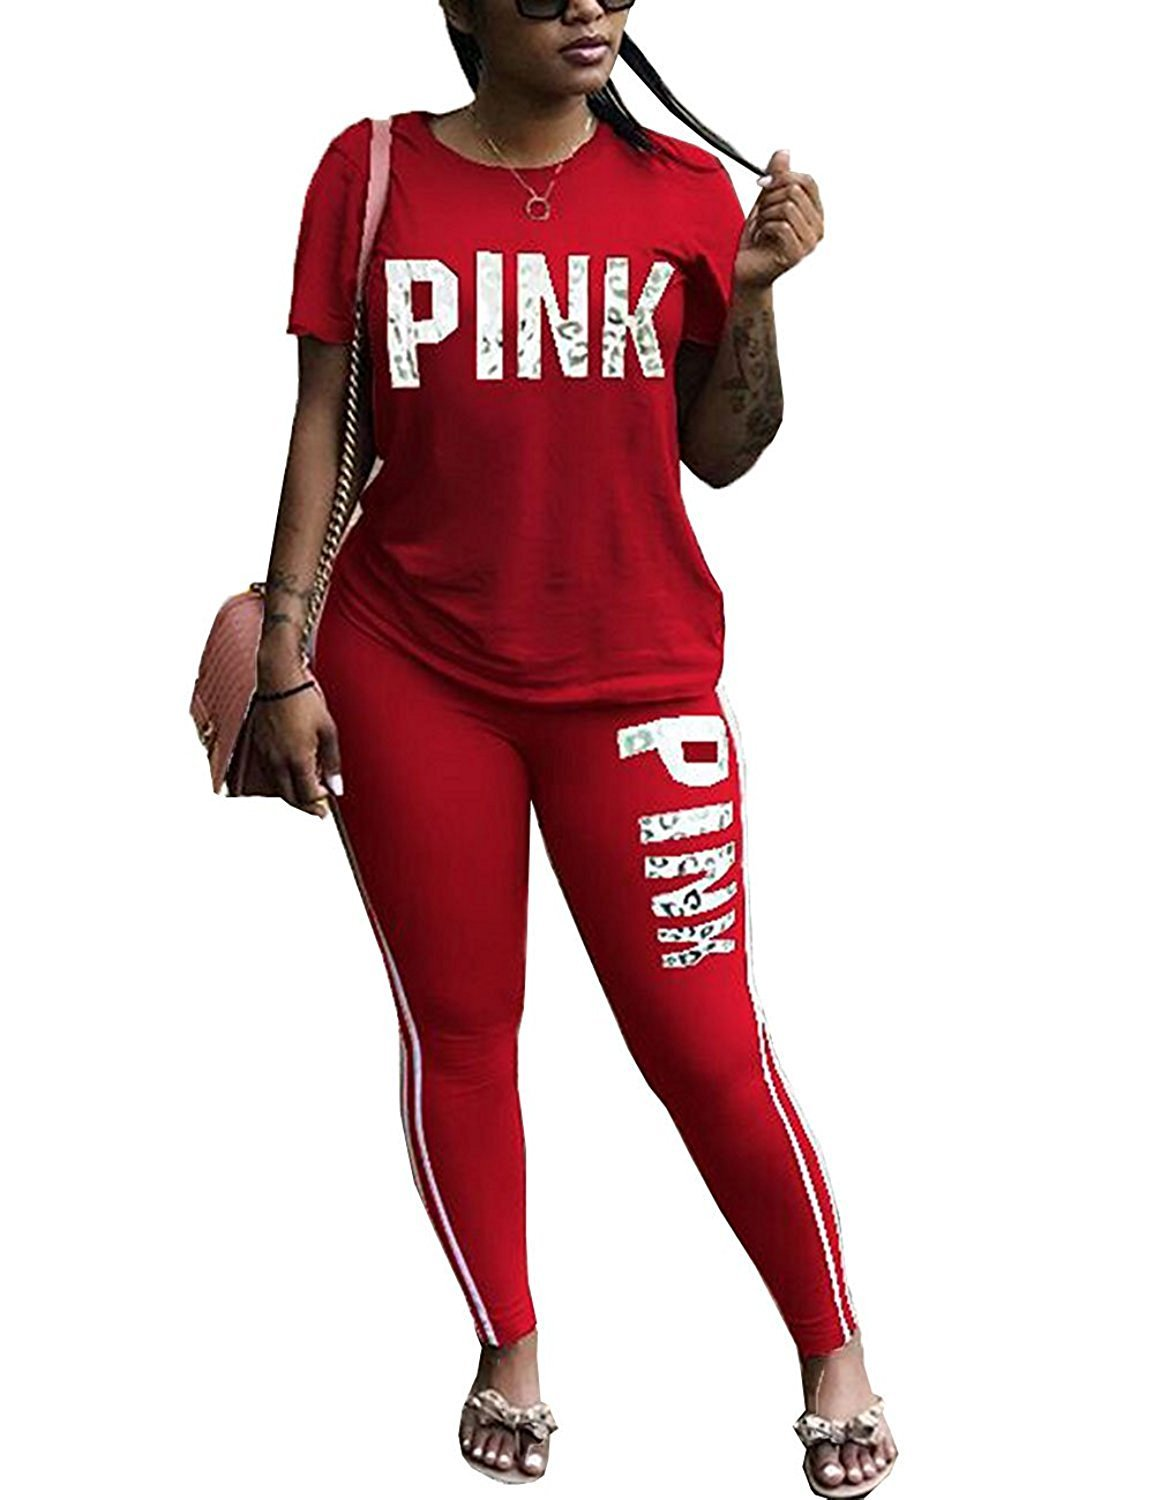 Salimdy Women Pink Letter Print Tracksuit 2 Piece Outfits Casual T-Shirt Tops and Skinny Long Pants Jumpsuit Red L